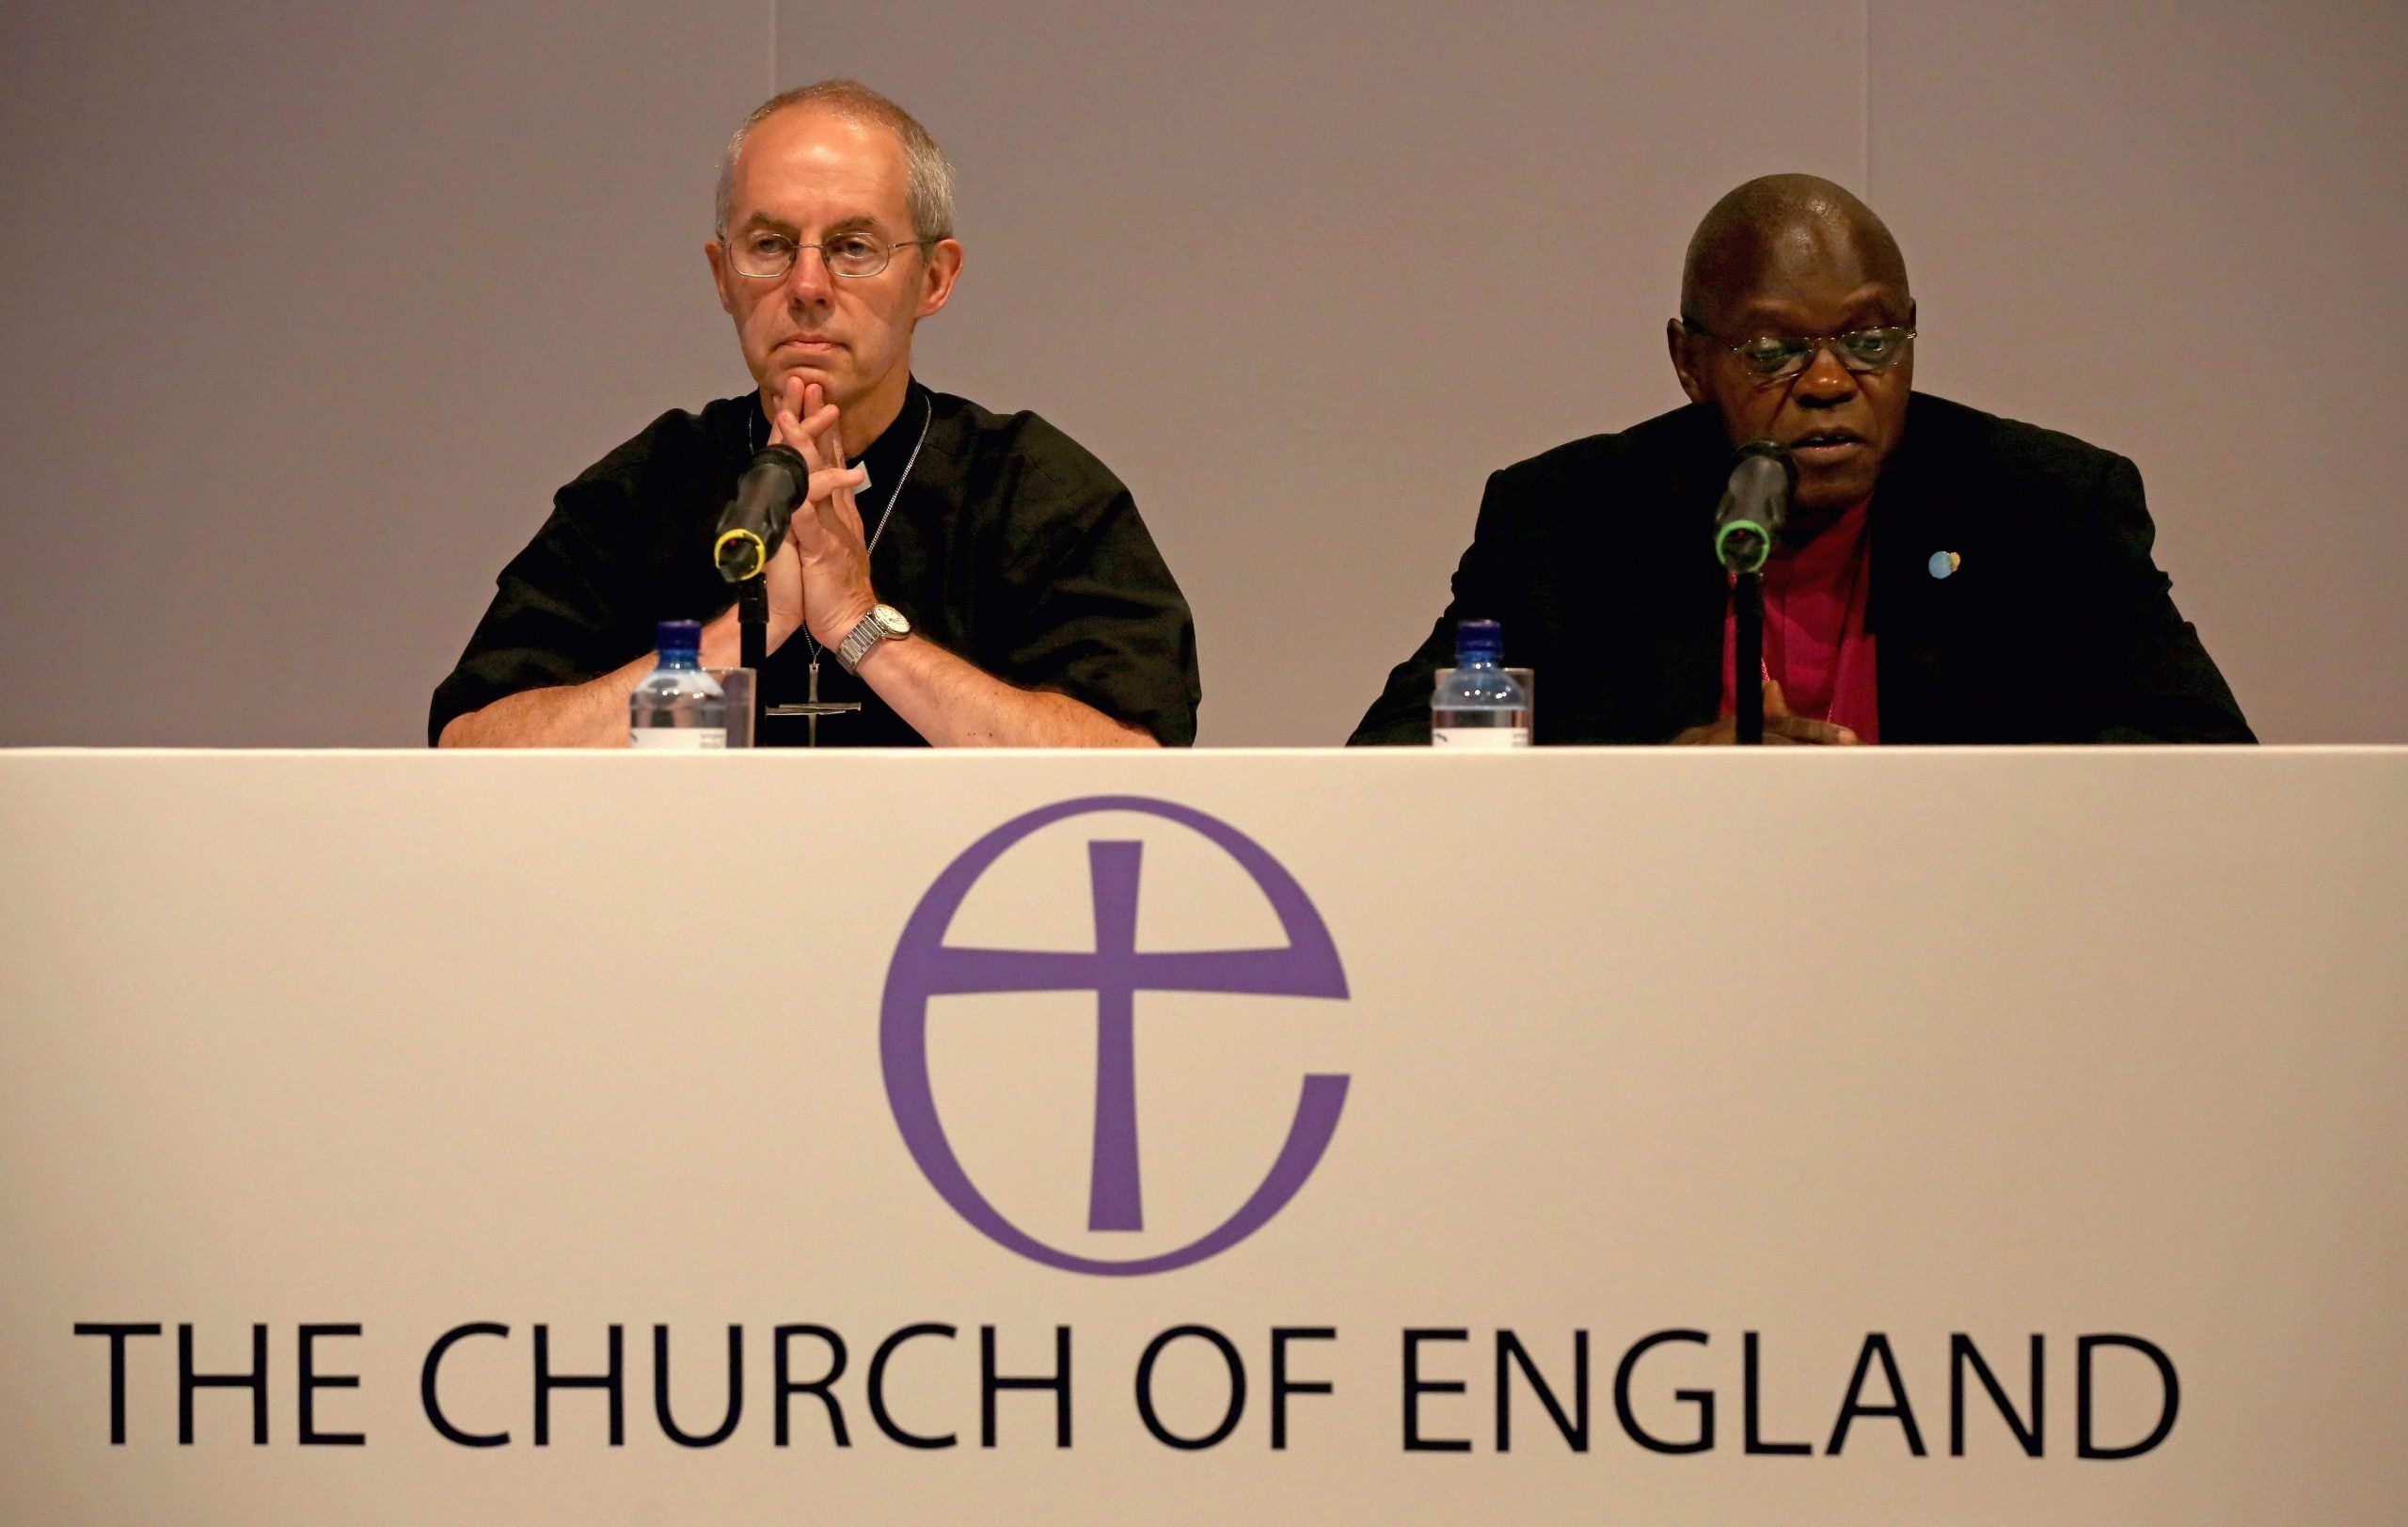 The attacks on the Archbishops show how the right has fallen into market fundamentalism